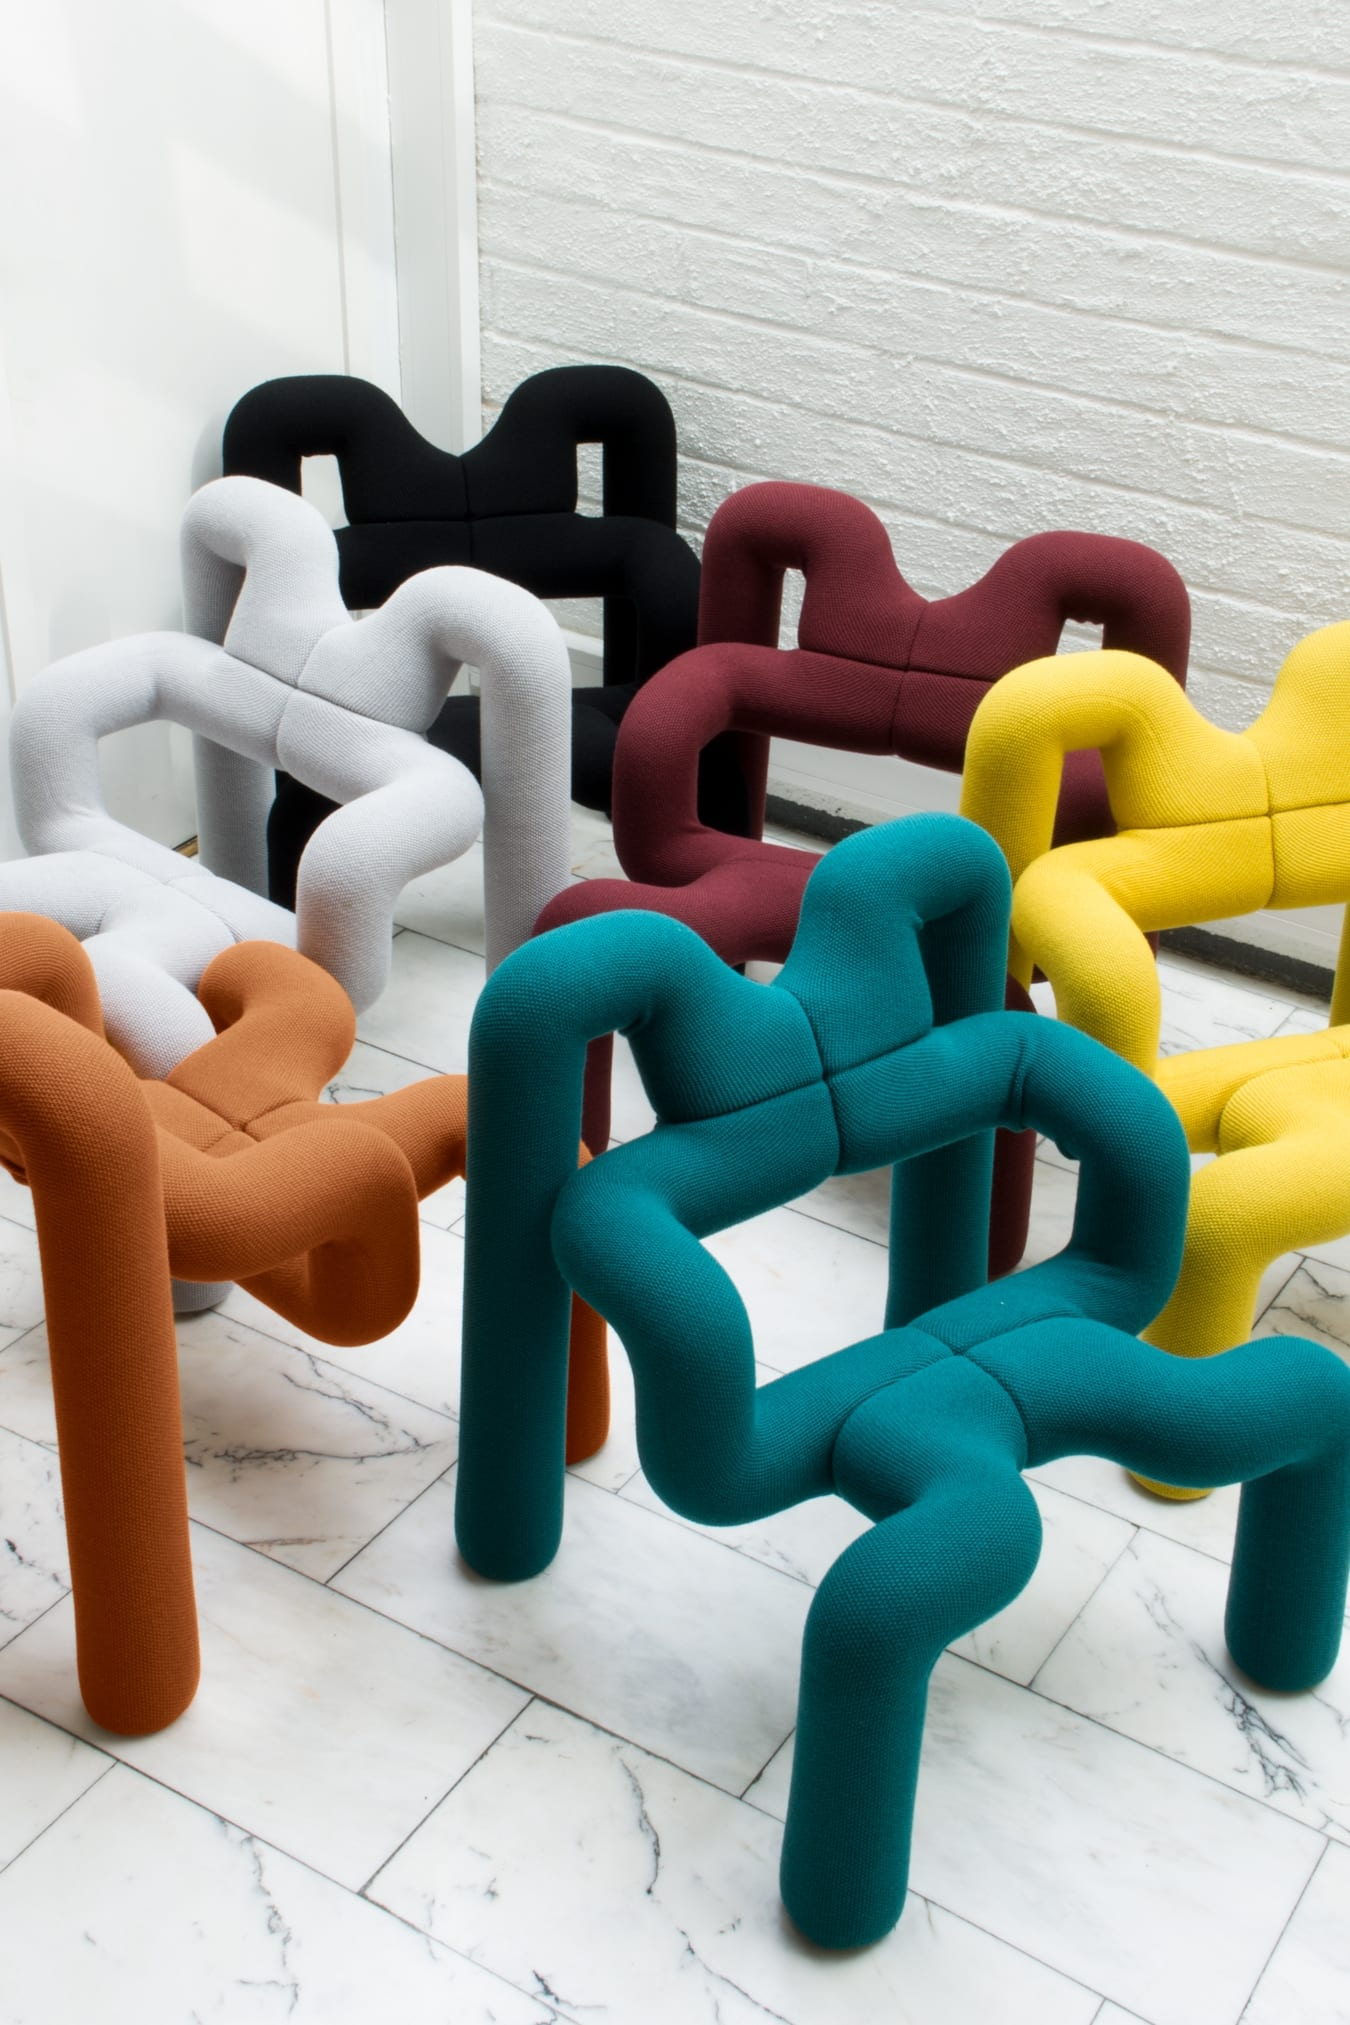 Sculptural Seating - '80s Interior Design Trends